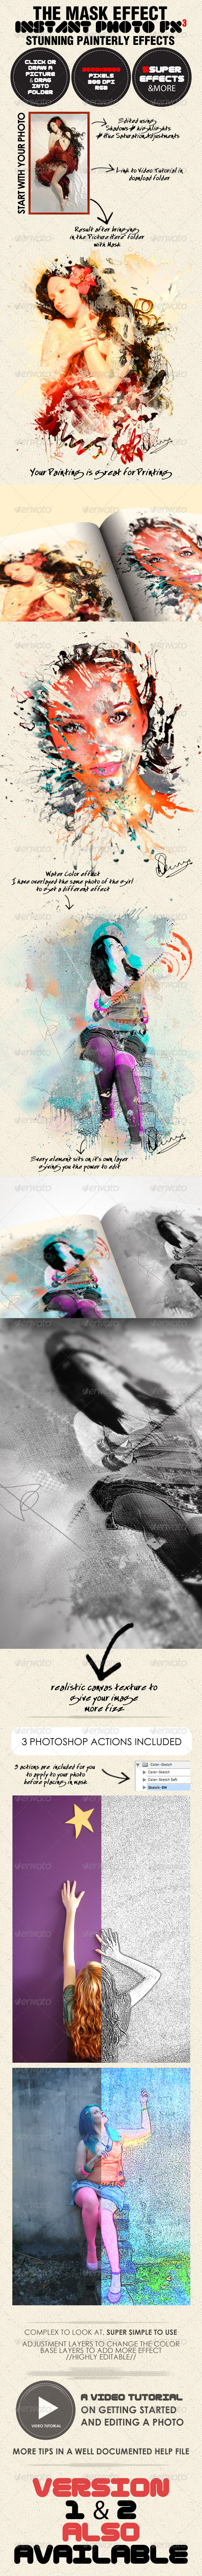 GraphicRiver Photo-Fx-Auto Mask#3 Stunning Photo Effects 1535843